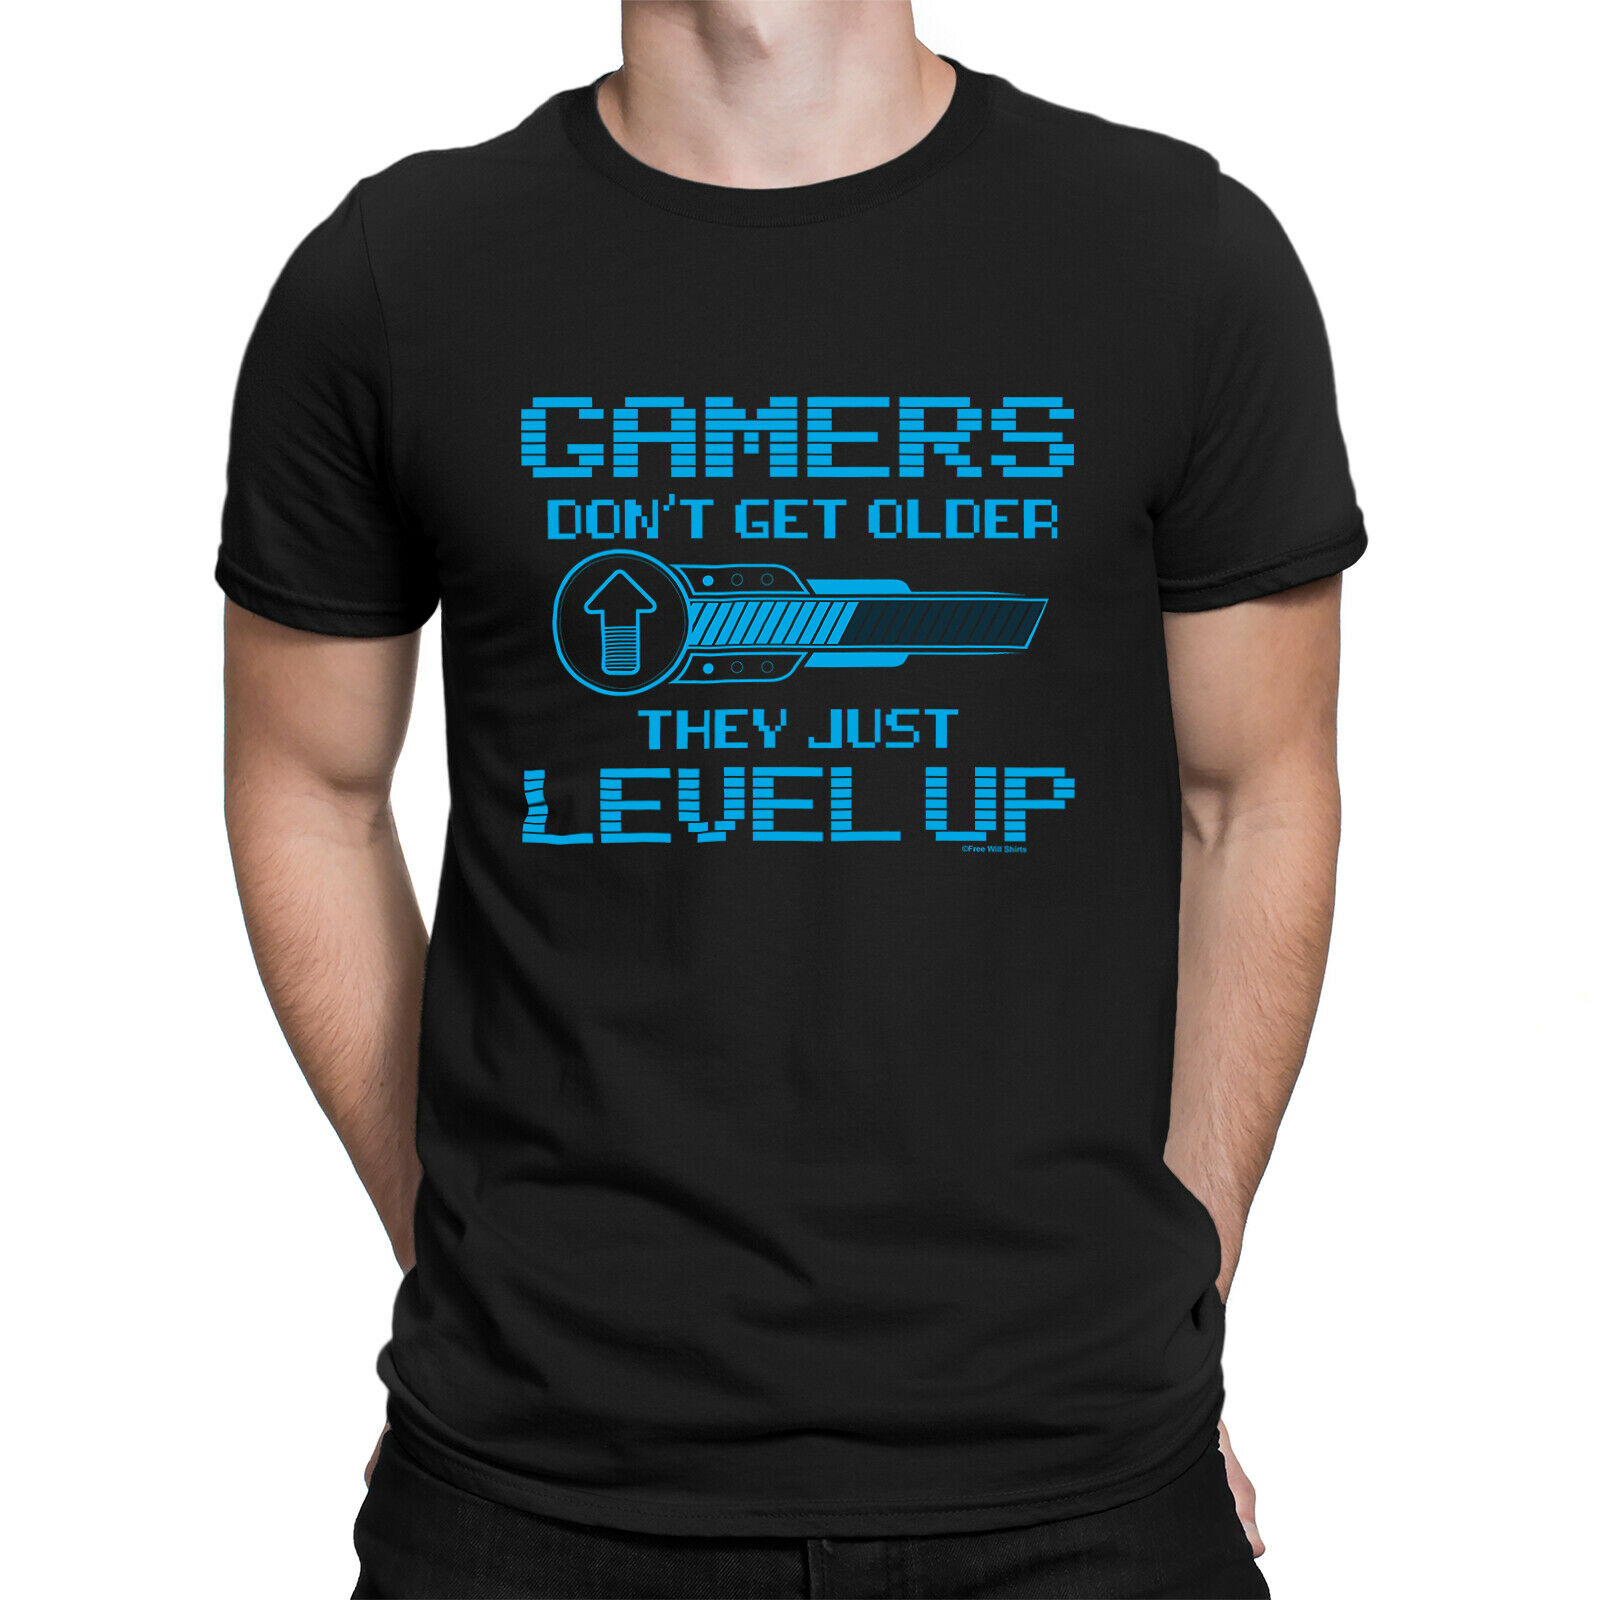 GAMERS LEVEL UP Mens Funny Gaming T-Shirt PS4 Xbox Console Retro Gamer Top Gift